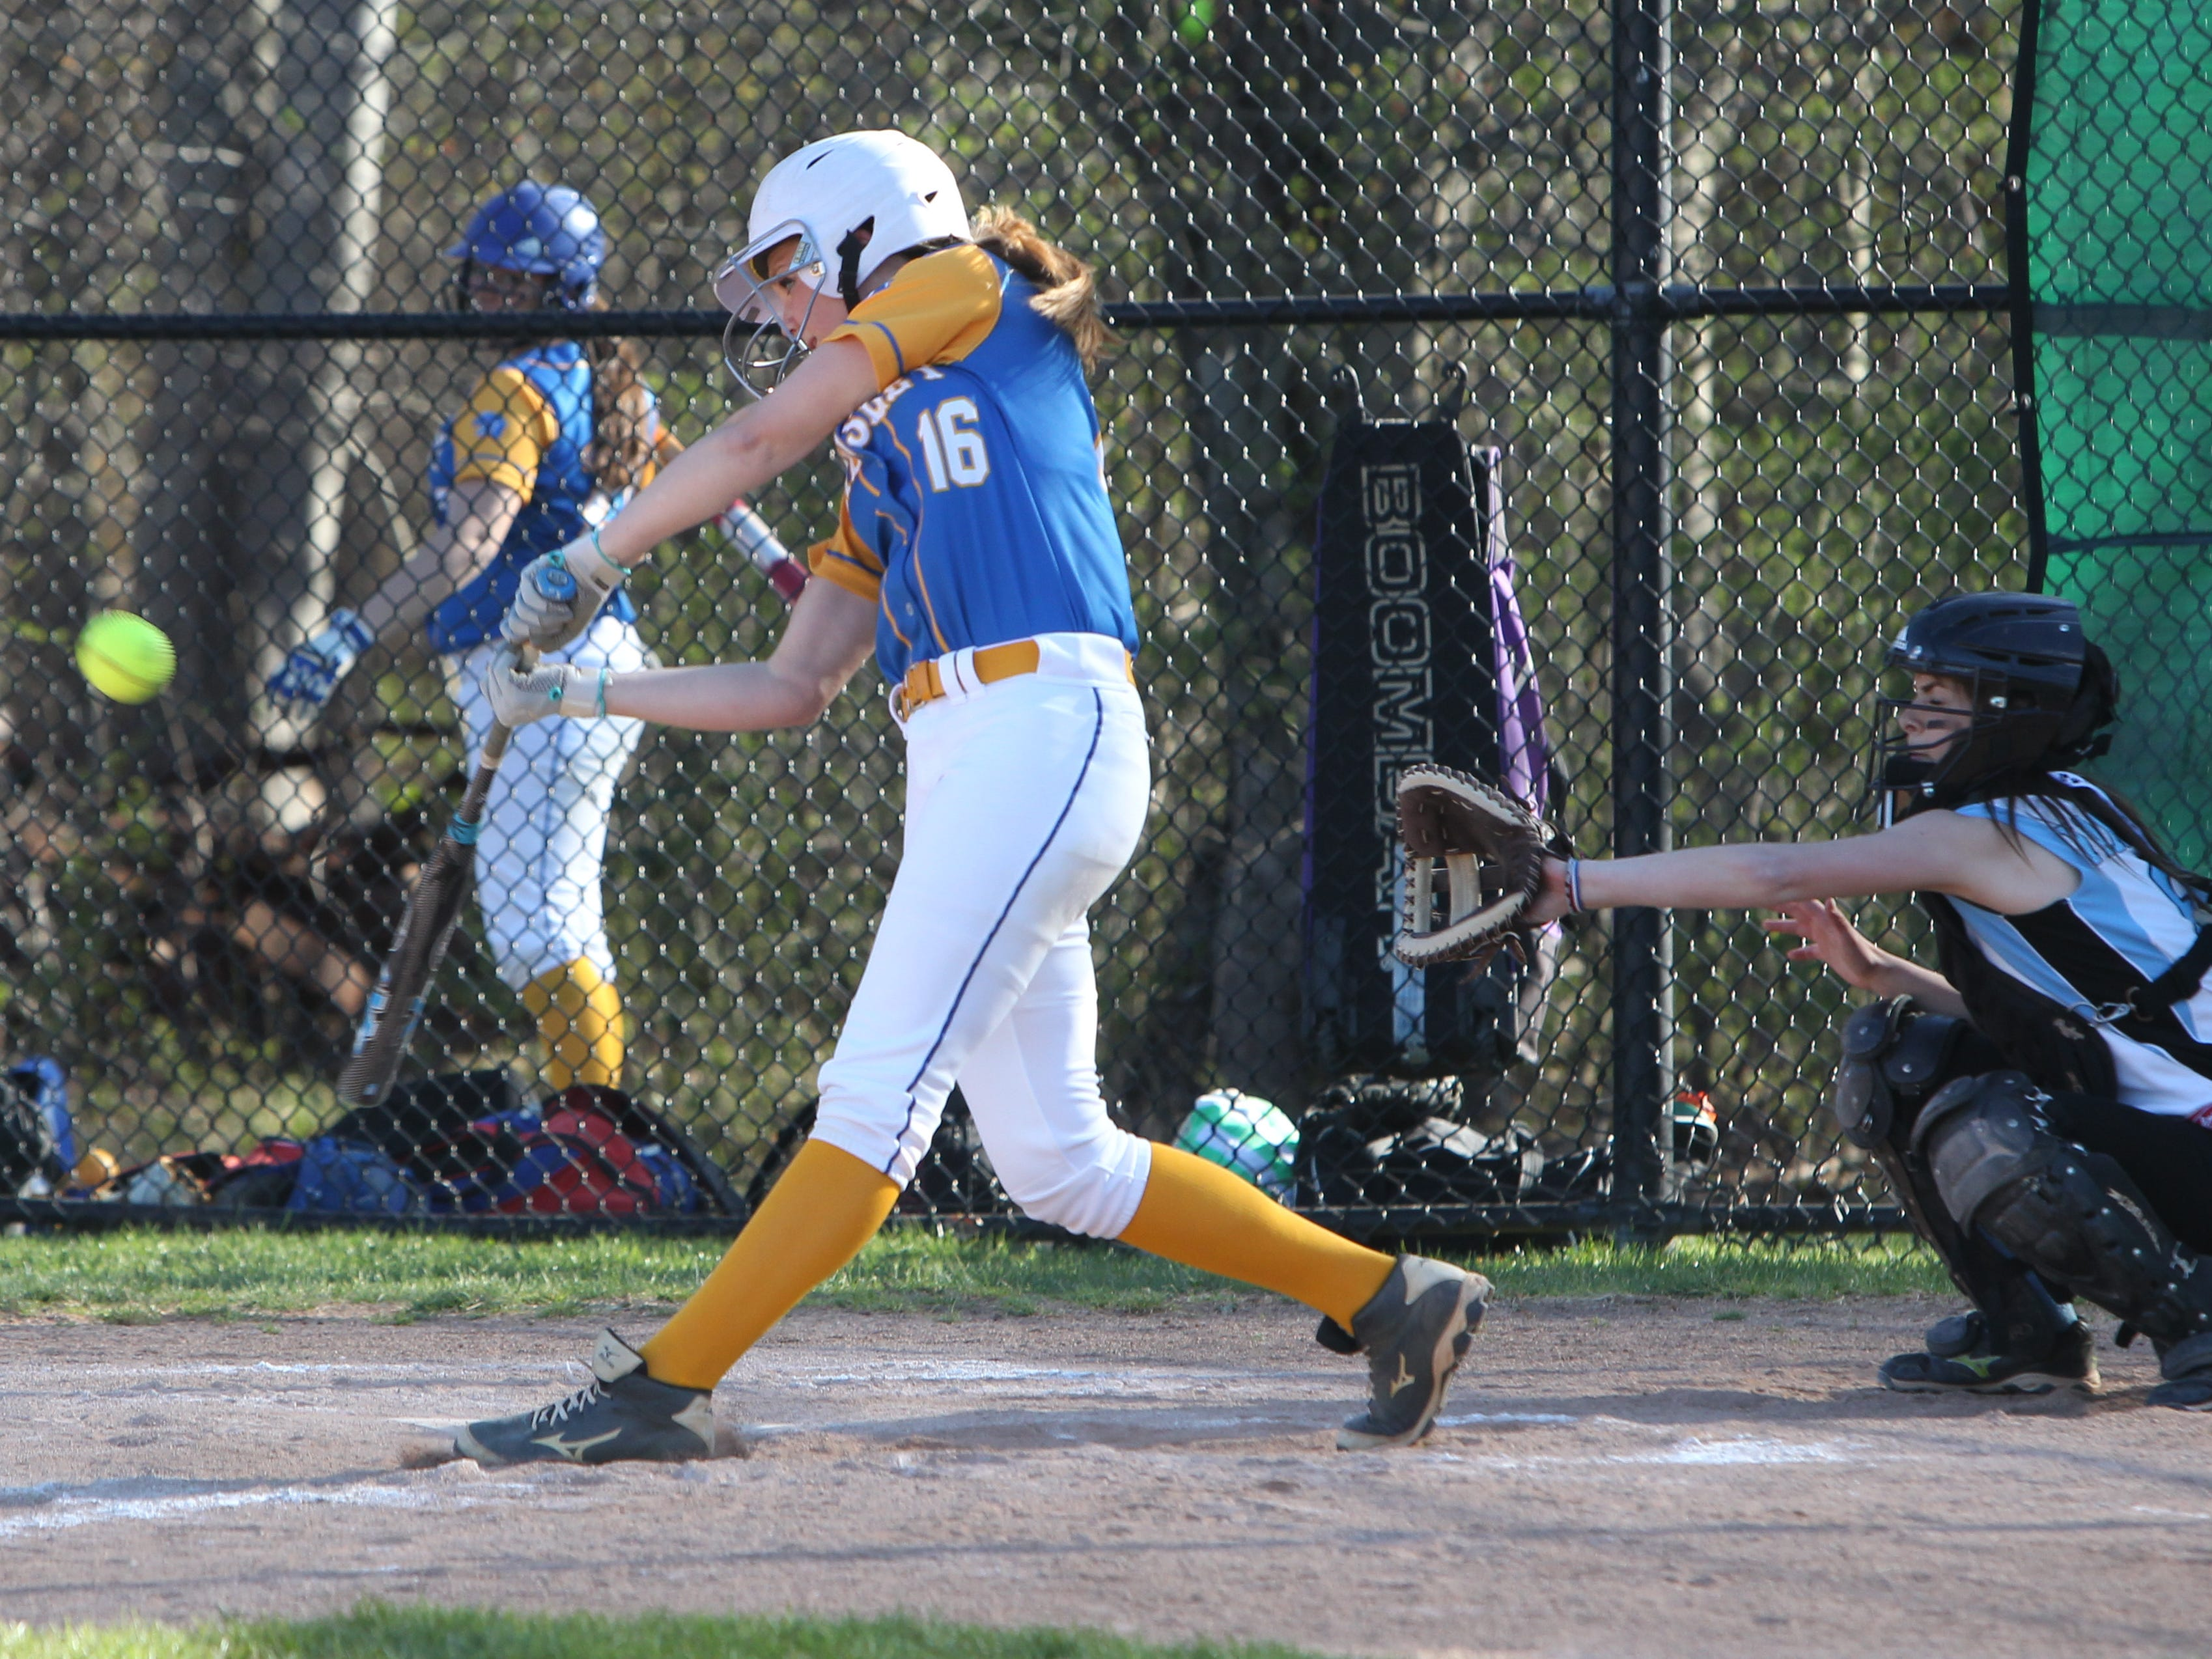 Ardsley's Raina Gorman connects during a game at Rye Neck April 28, 2015. Ardsley won 1-0.